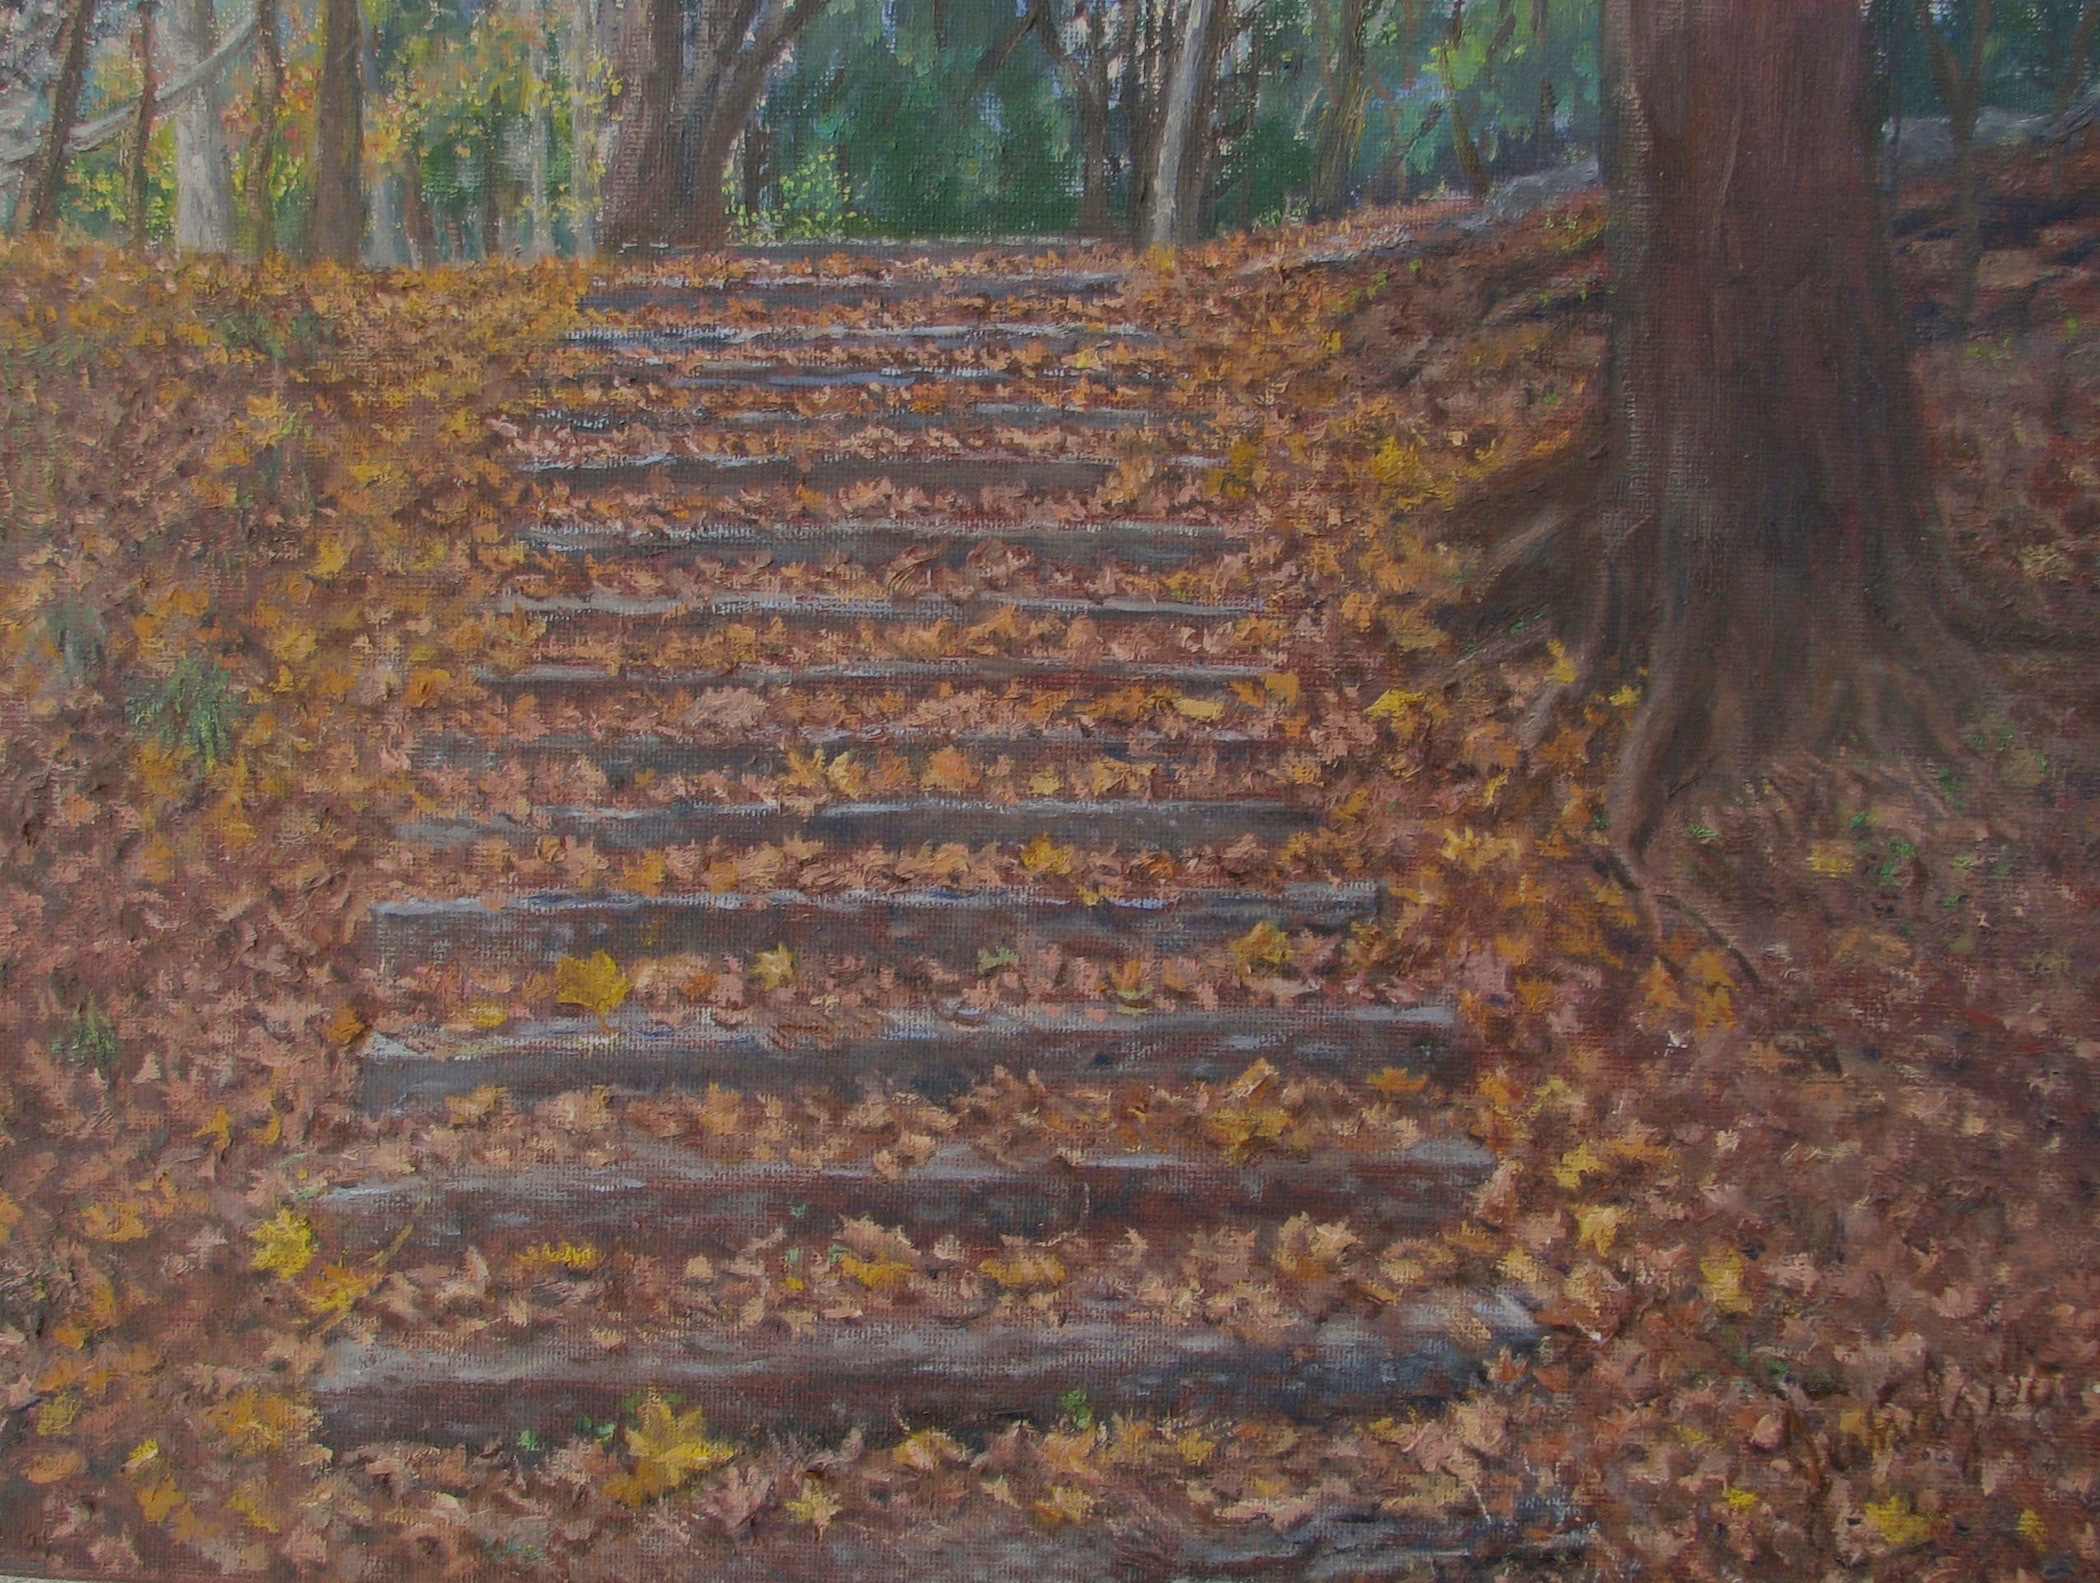 Leaves Descending a Staircase